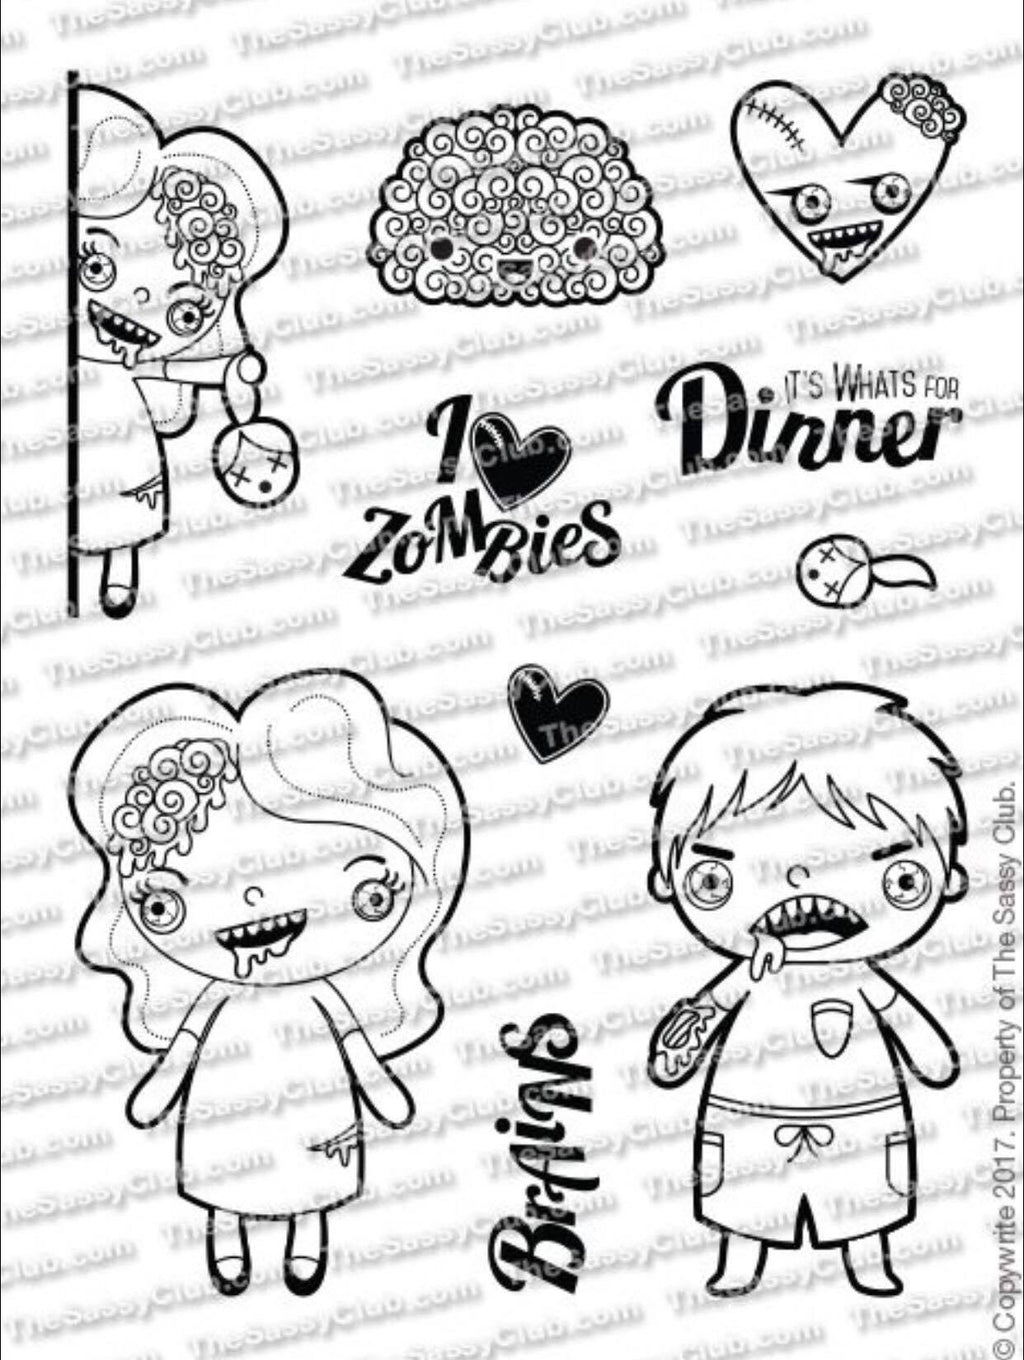 Zombies (3X4 Stamp Set) Planner Stamps